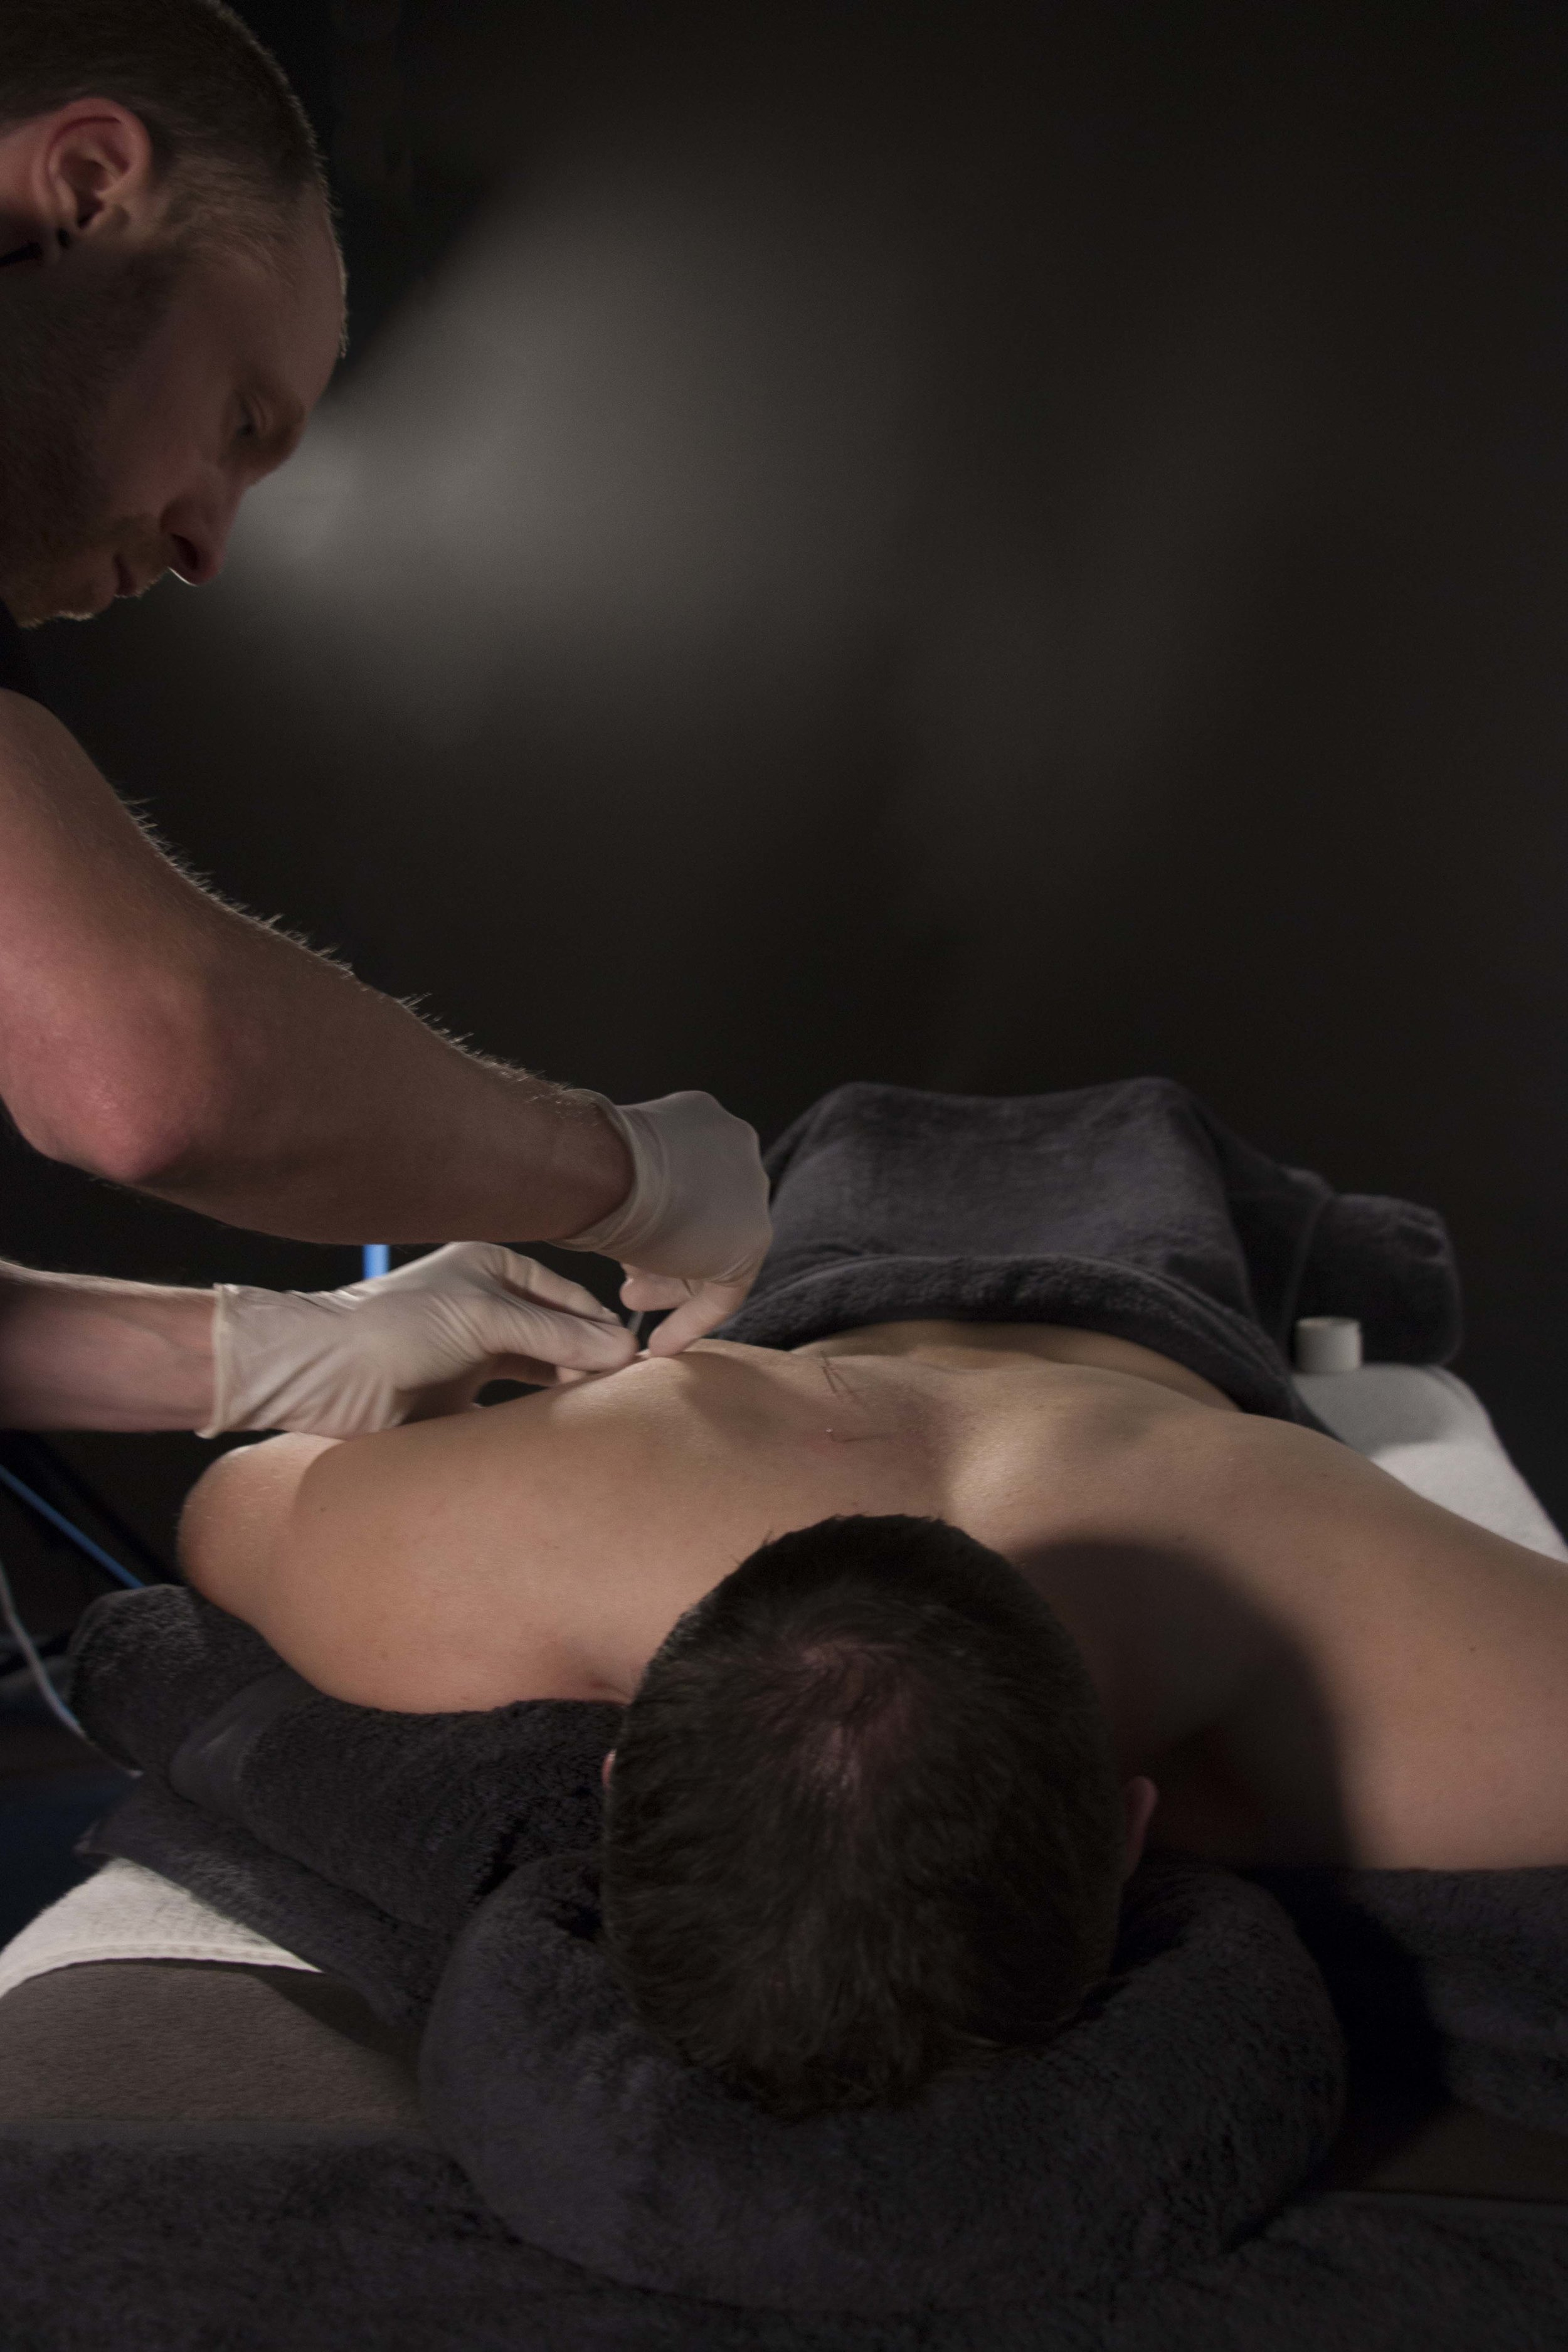 Dry Needling: - 1. Effective treatment to reduce muscle pain and tension2. Hair-line fine needle is inserted into muscle trigger point3. Excellent safety record, nearly painless procedure4. Evidence based intervention supported by research5. Tennis elbow, lower back pain and rotator cuff injuries are conditions that respond to dry-needling